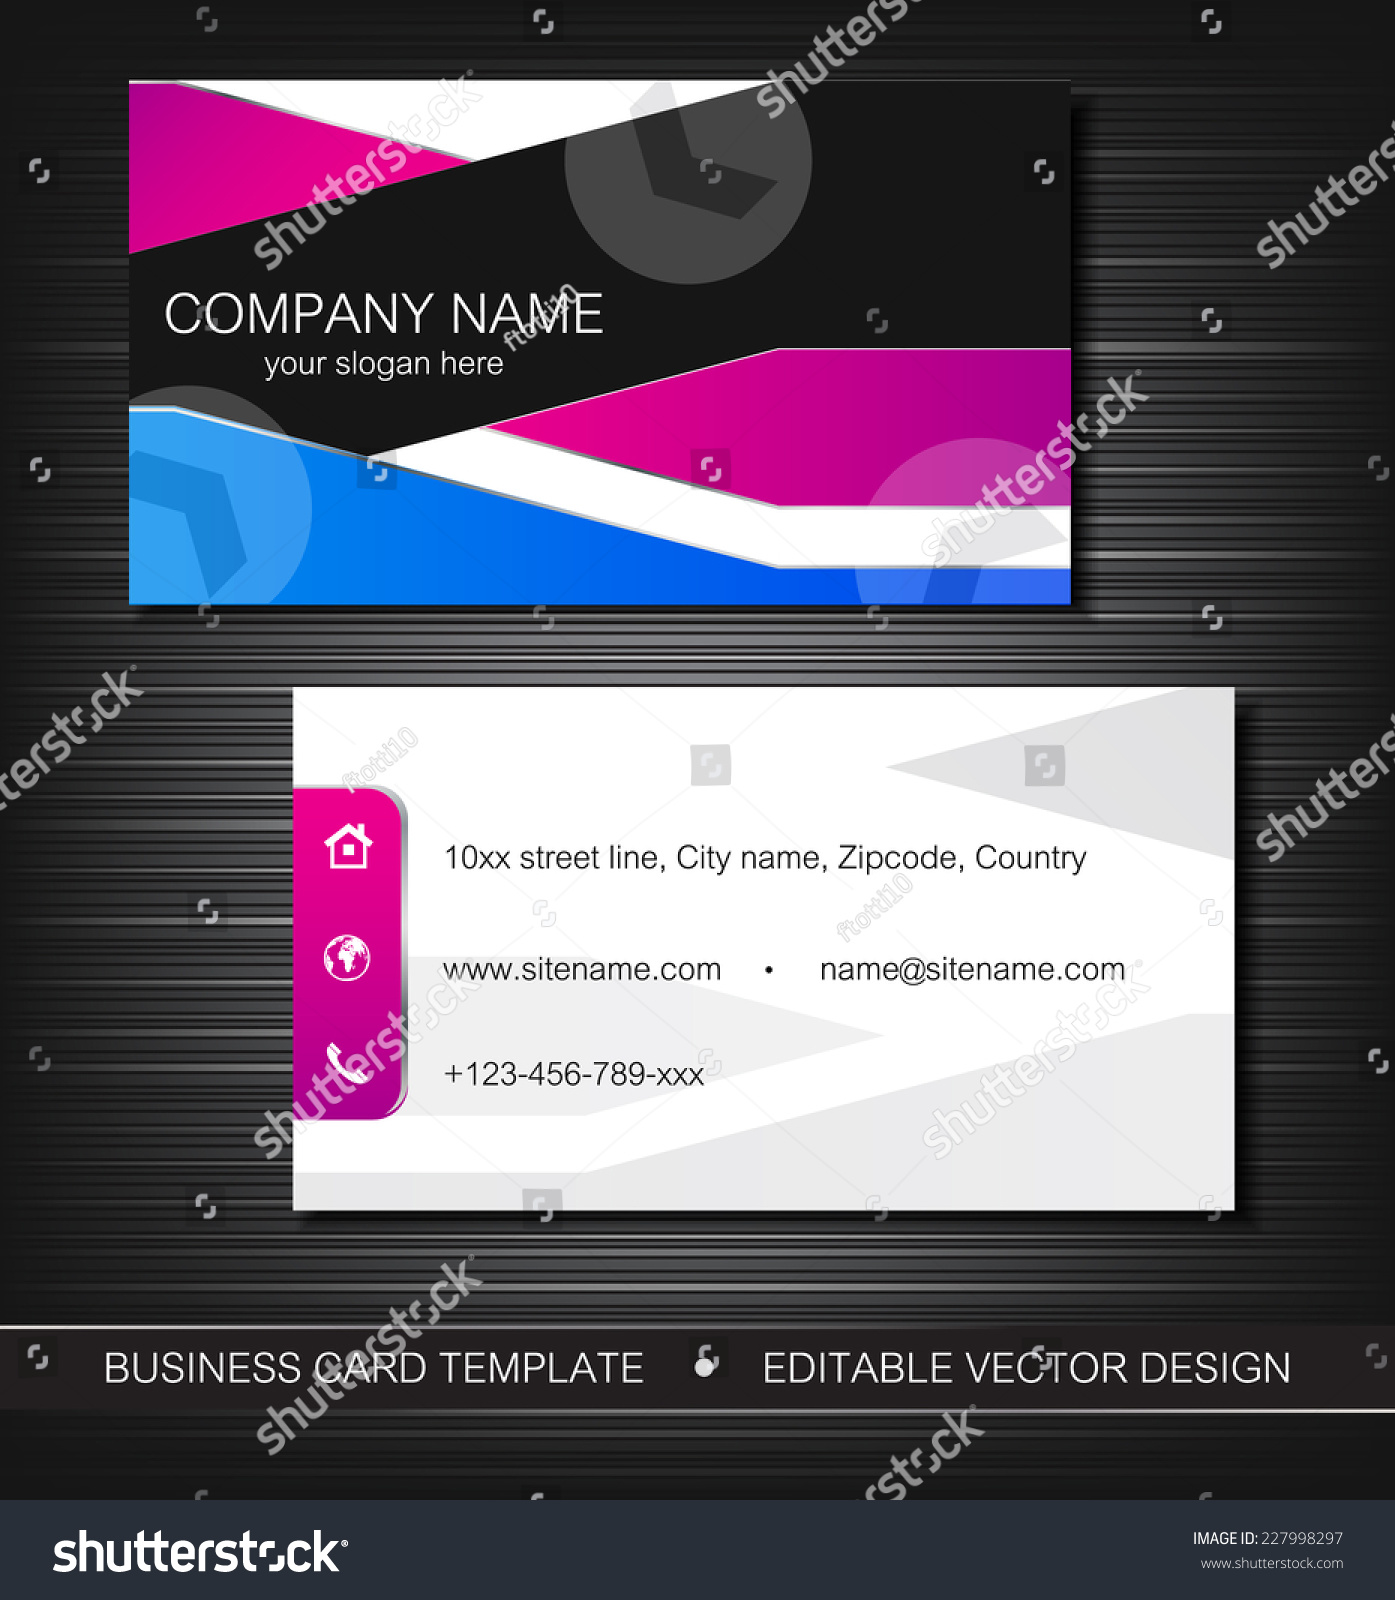 Business card template front back sideeditable stock vector royalty business card template with front and back sideeditable vector design accmission Image collections